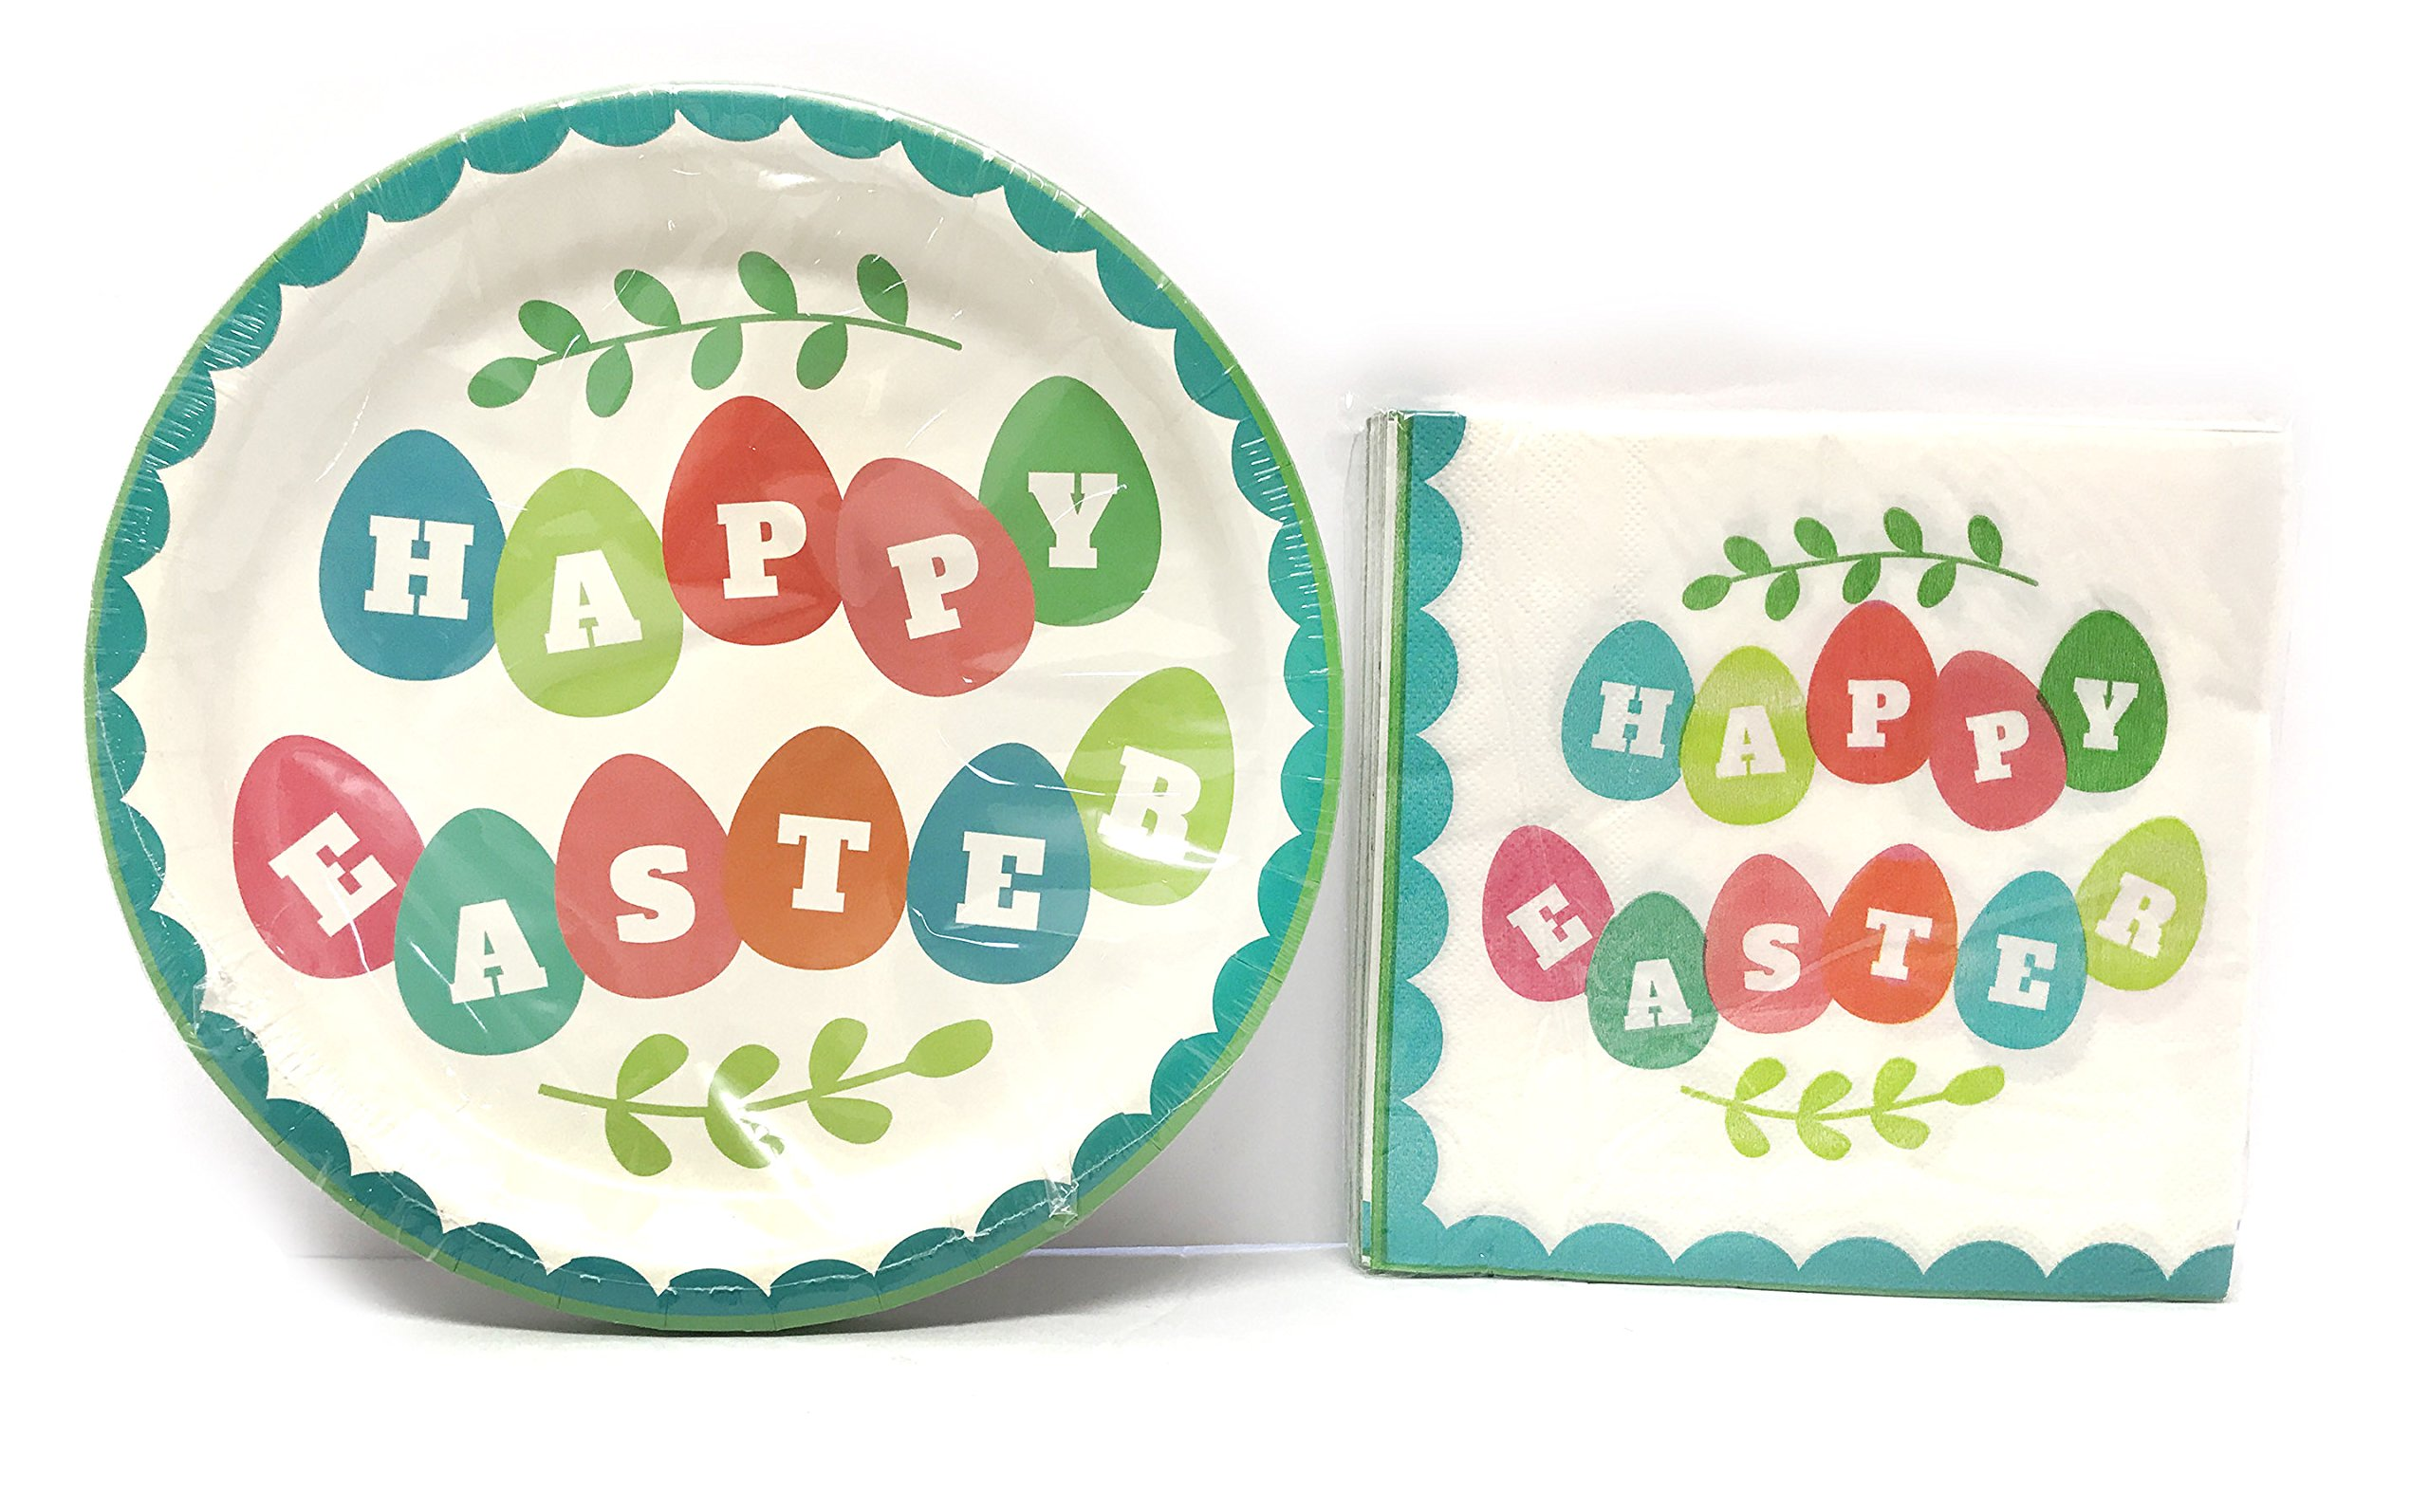 Easter Egg Happy Easter Party Paper Plates Party Supplies Disposable Set: 18 Round Paper Plates, 8.75 inches, 18 Lunch Napkins, Coordinating Set